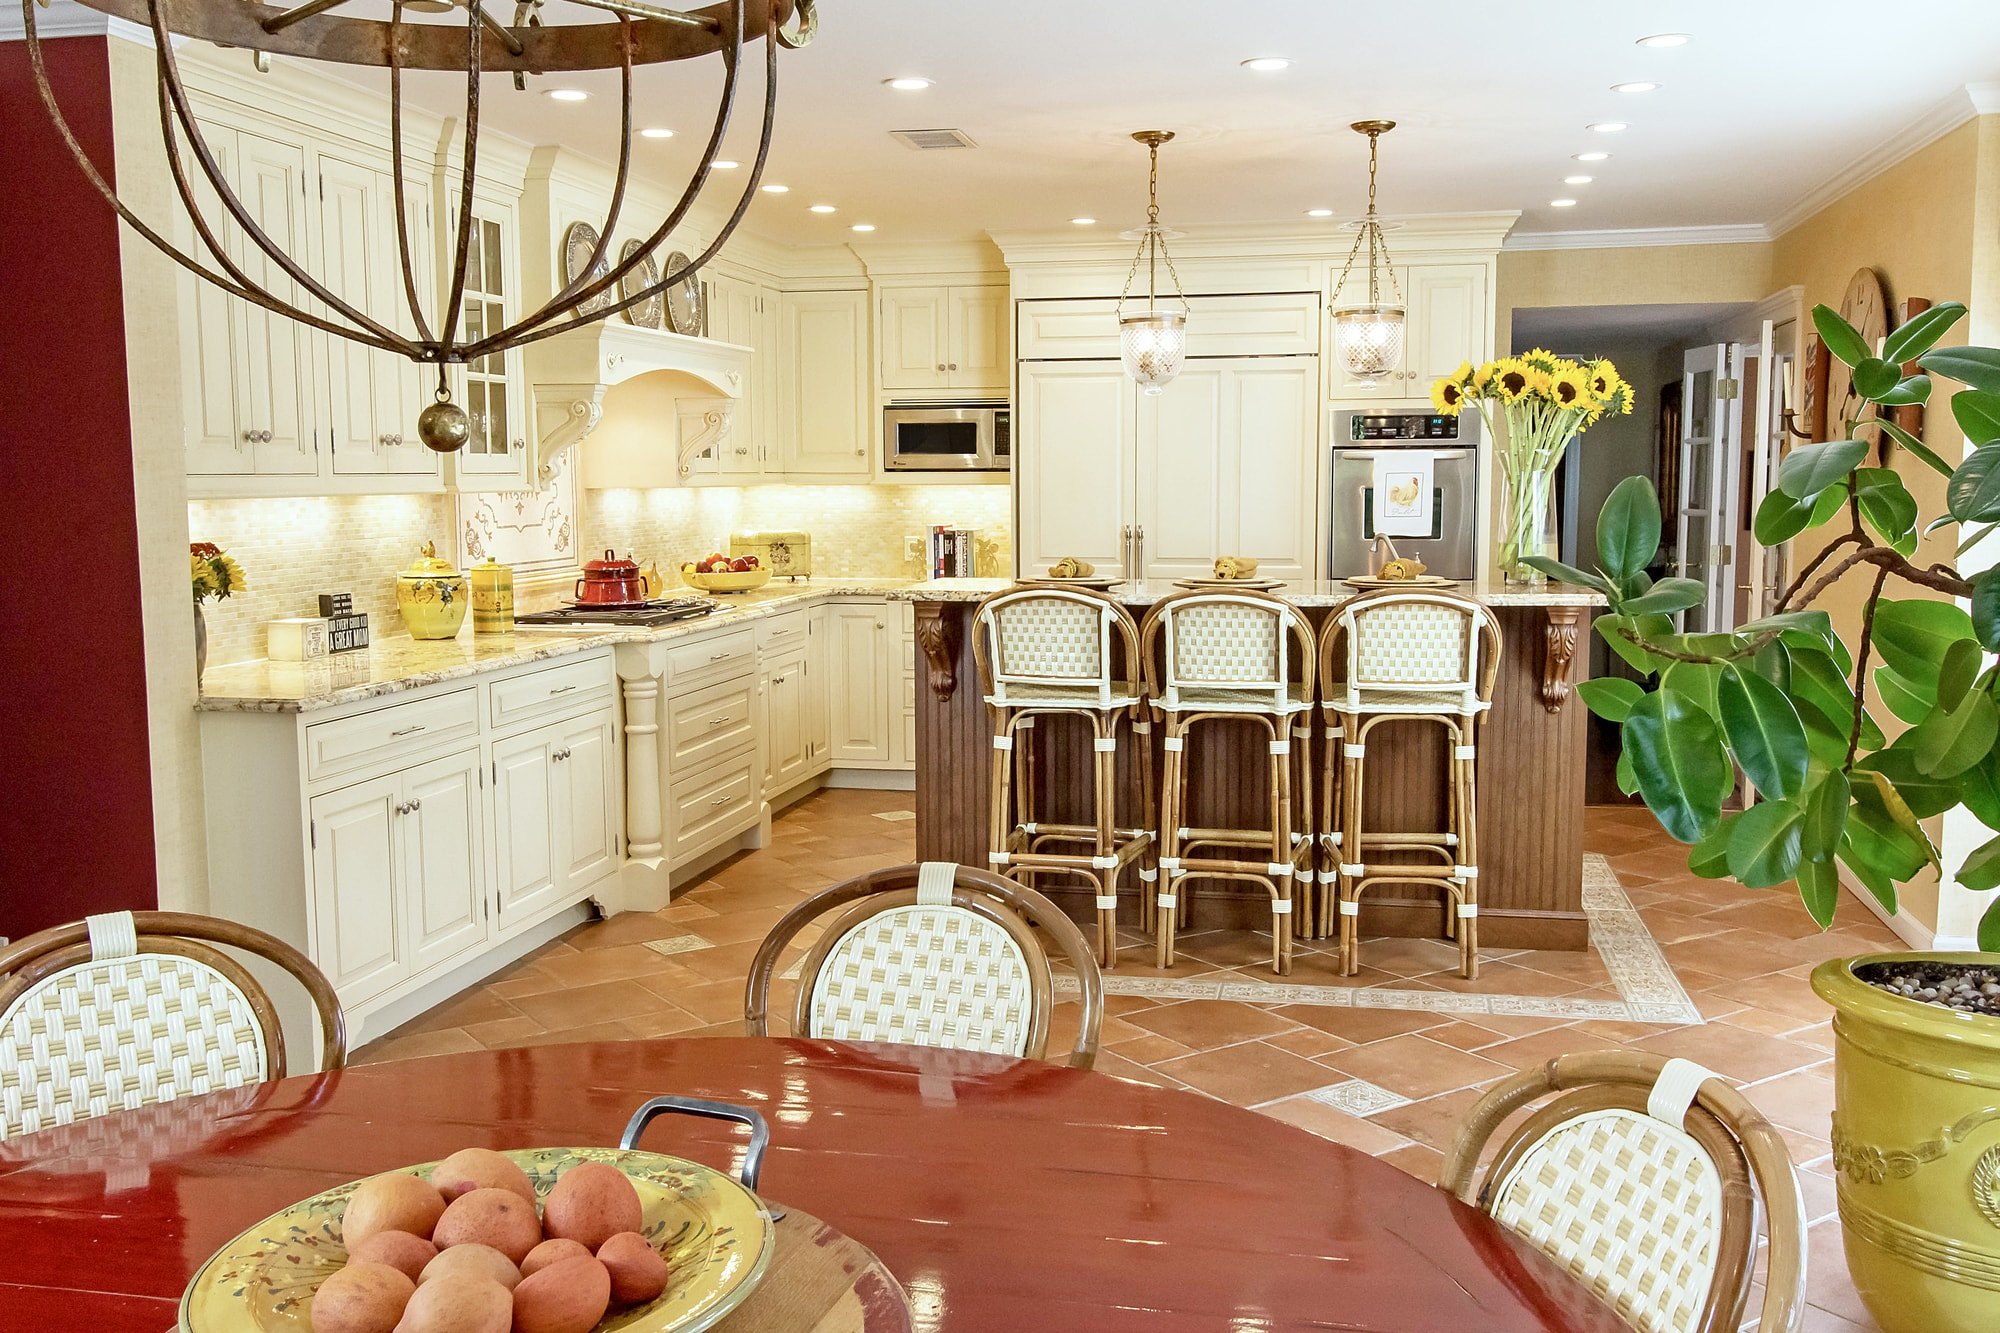 Traditional style kitchen with kitchen island and breakfast table